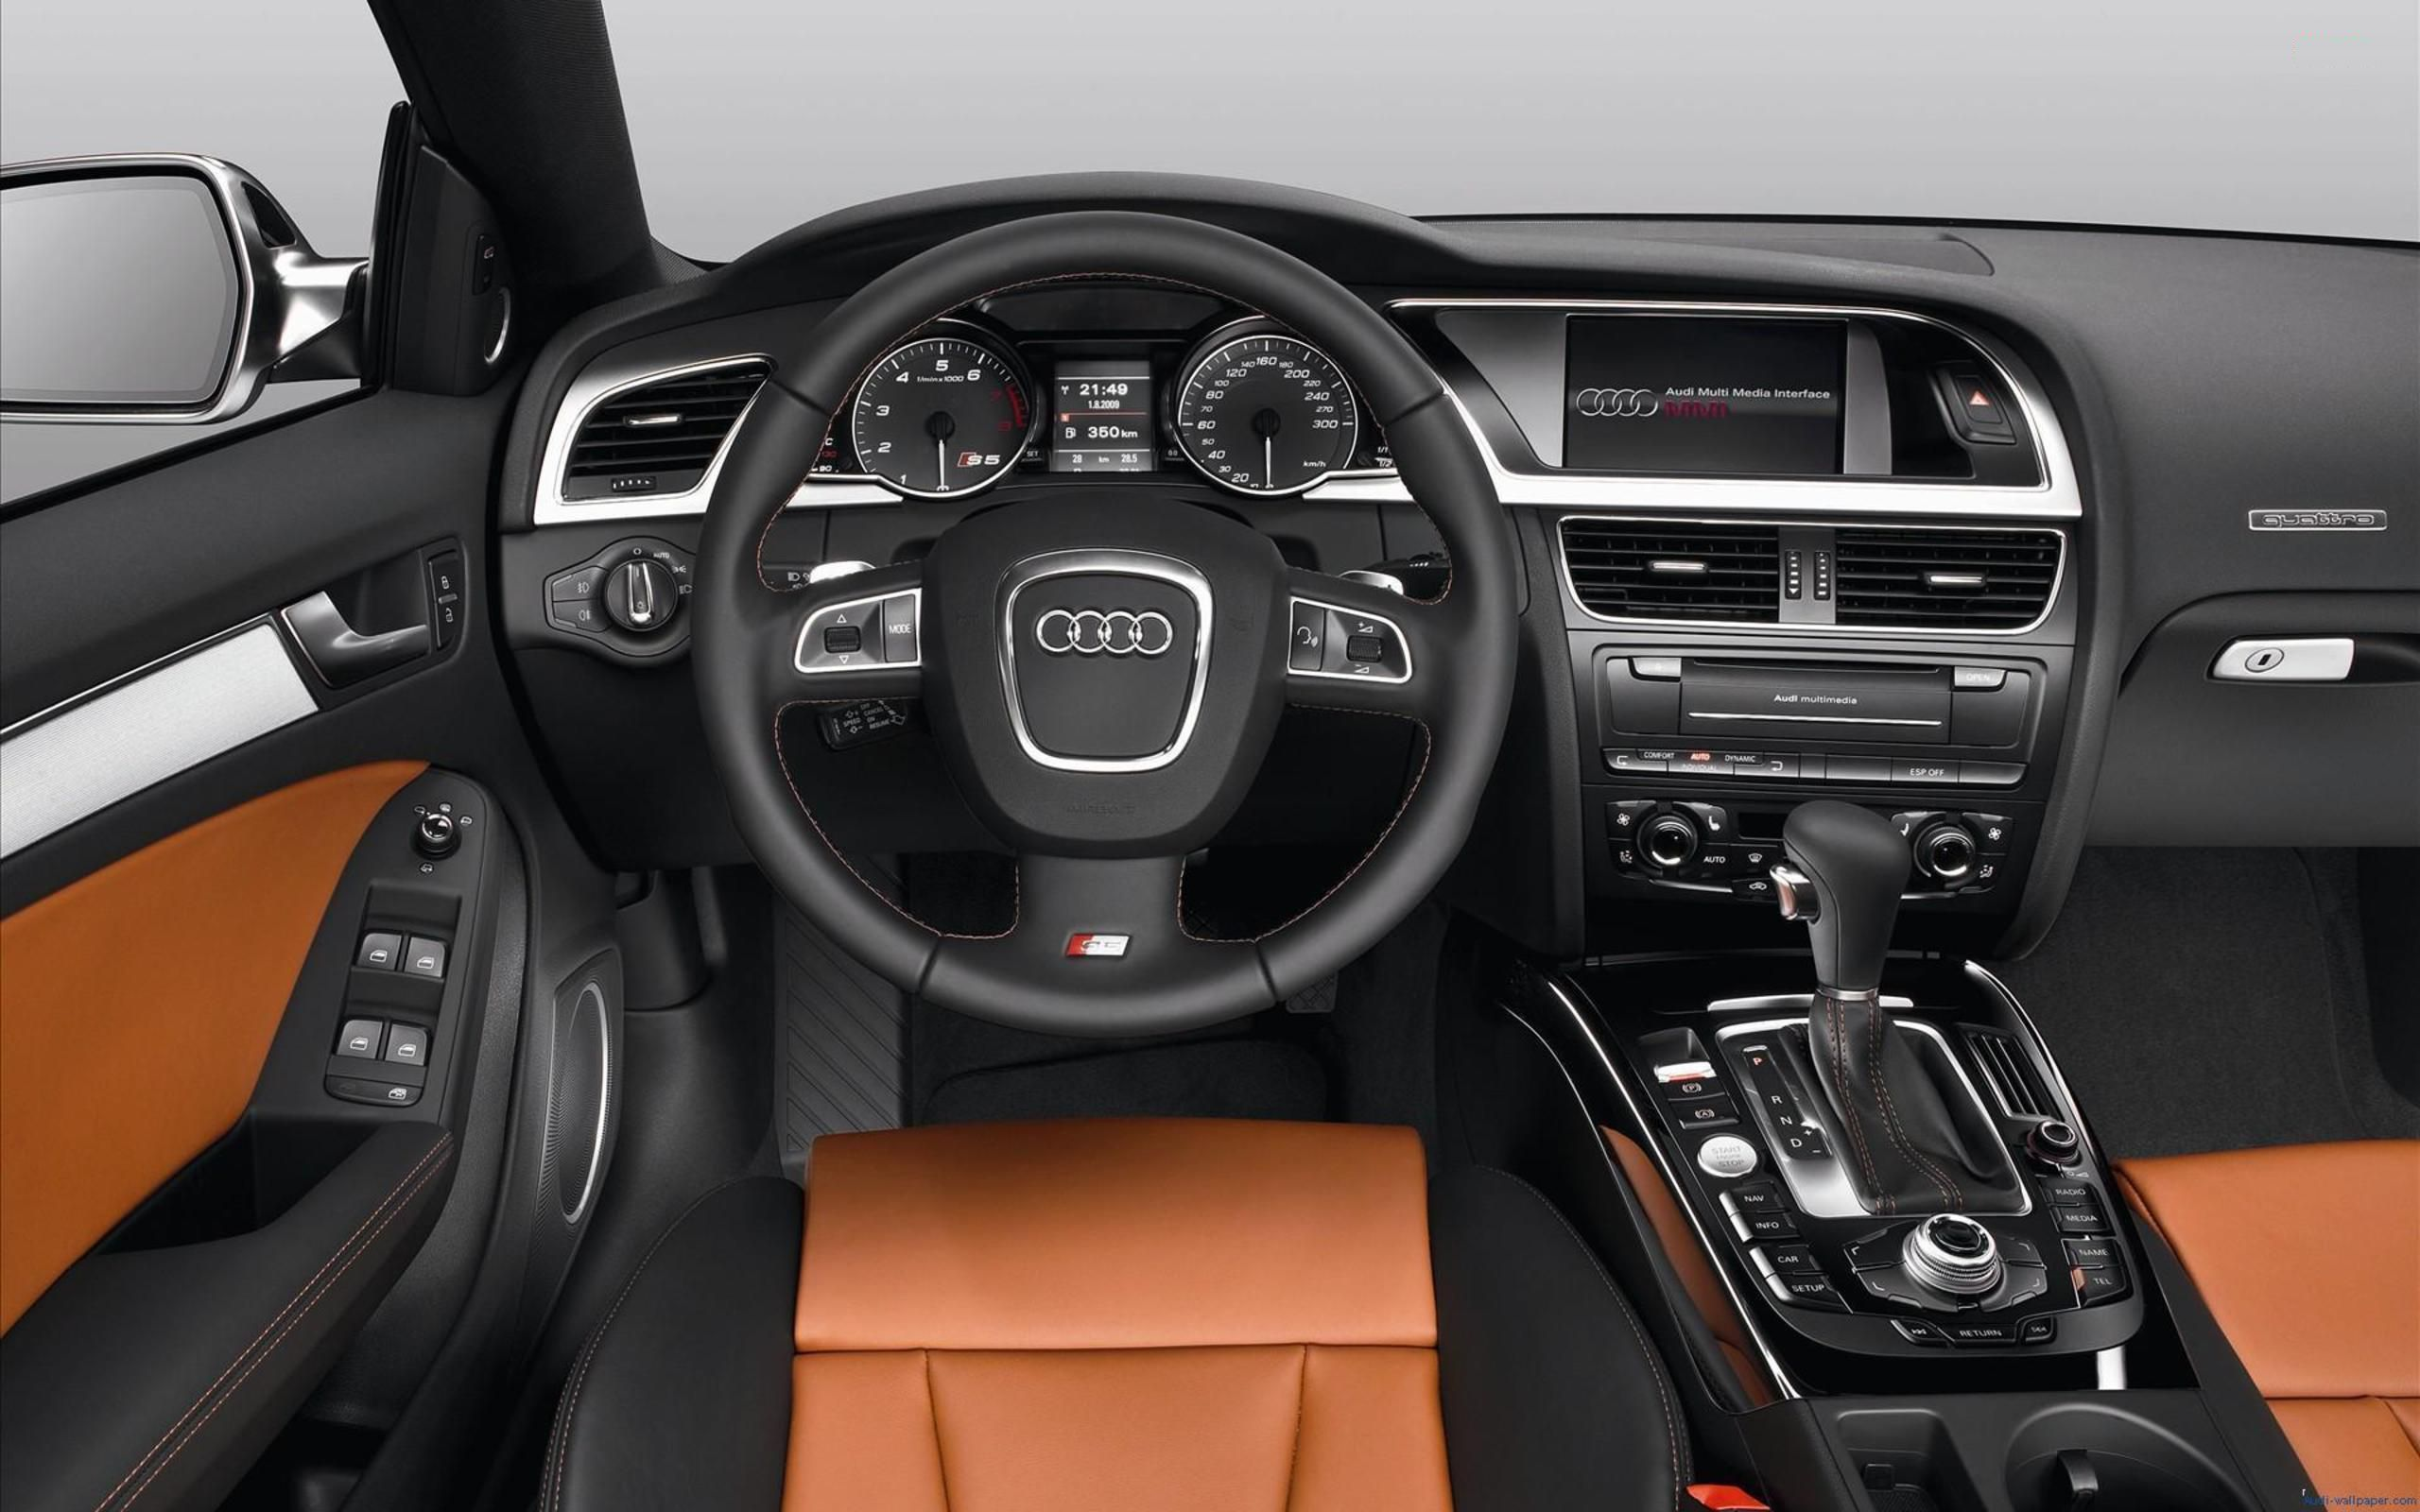 sportback main reviews review audi this automobiles wheels car year ca later here